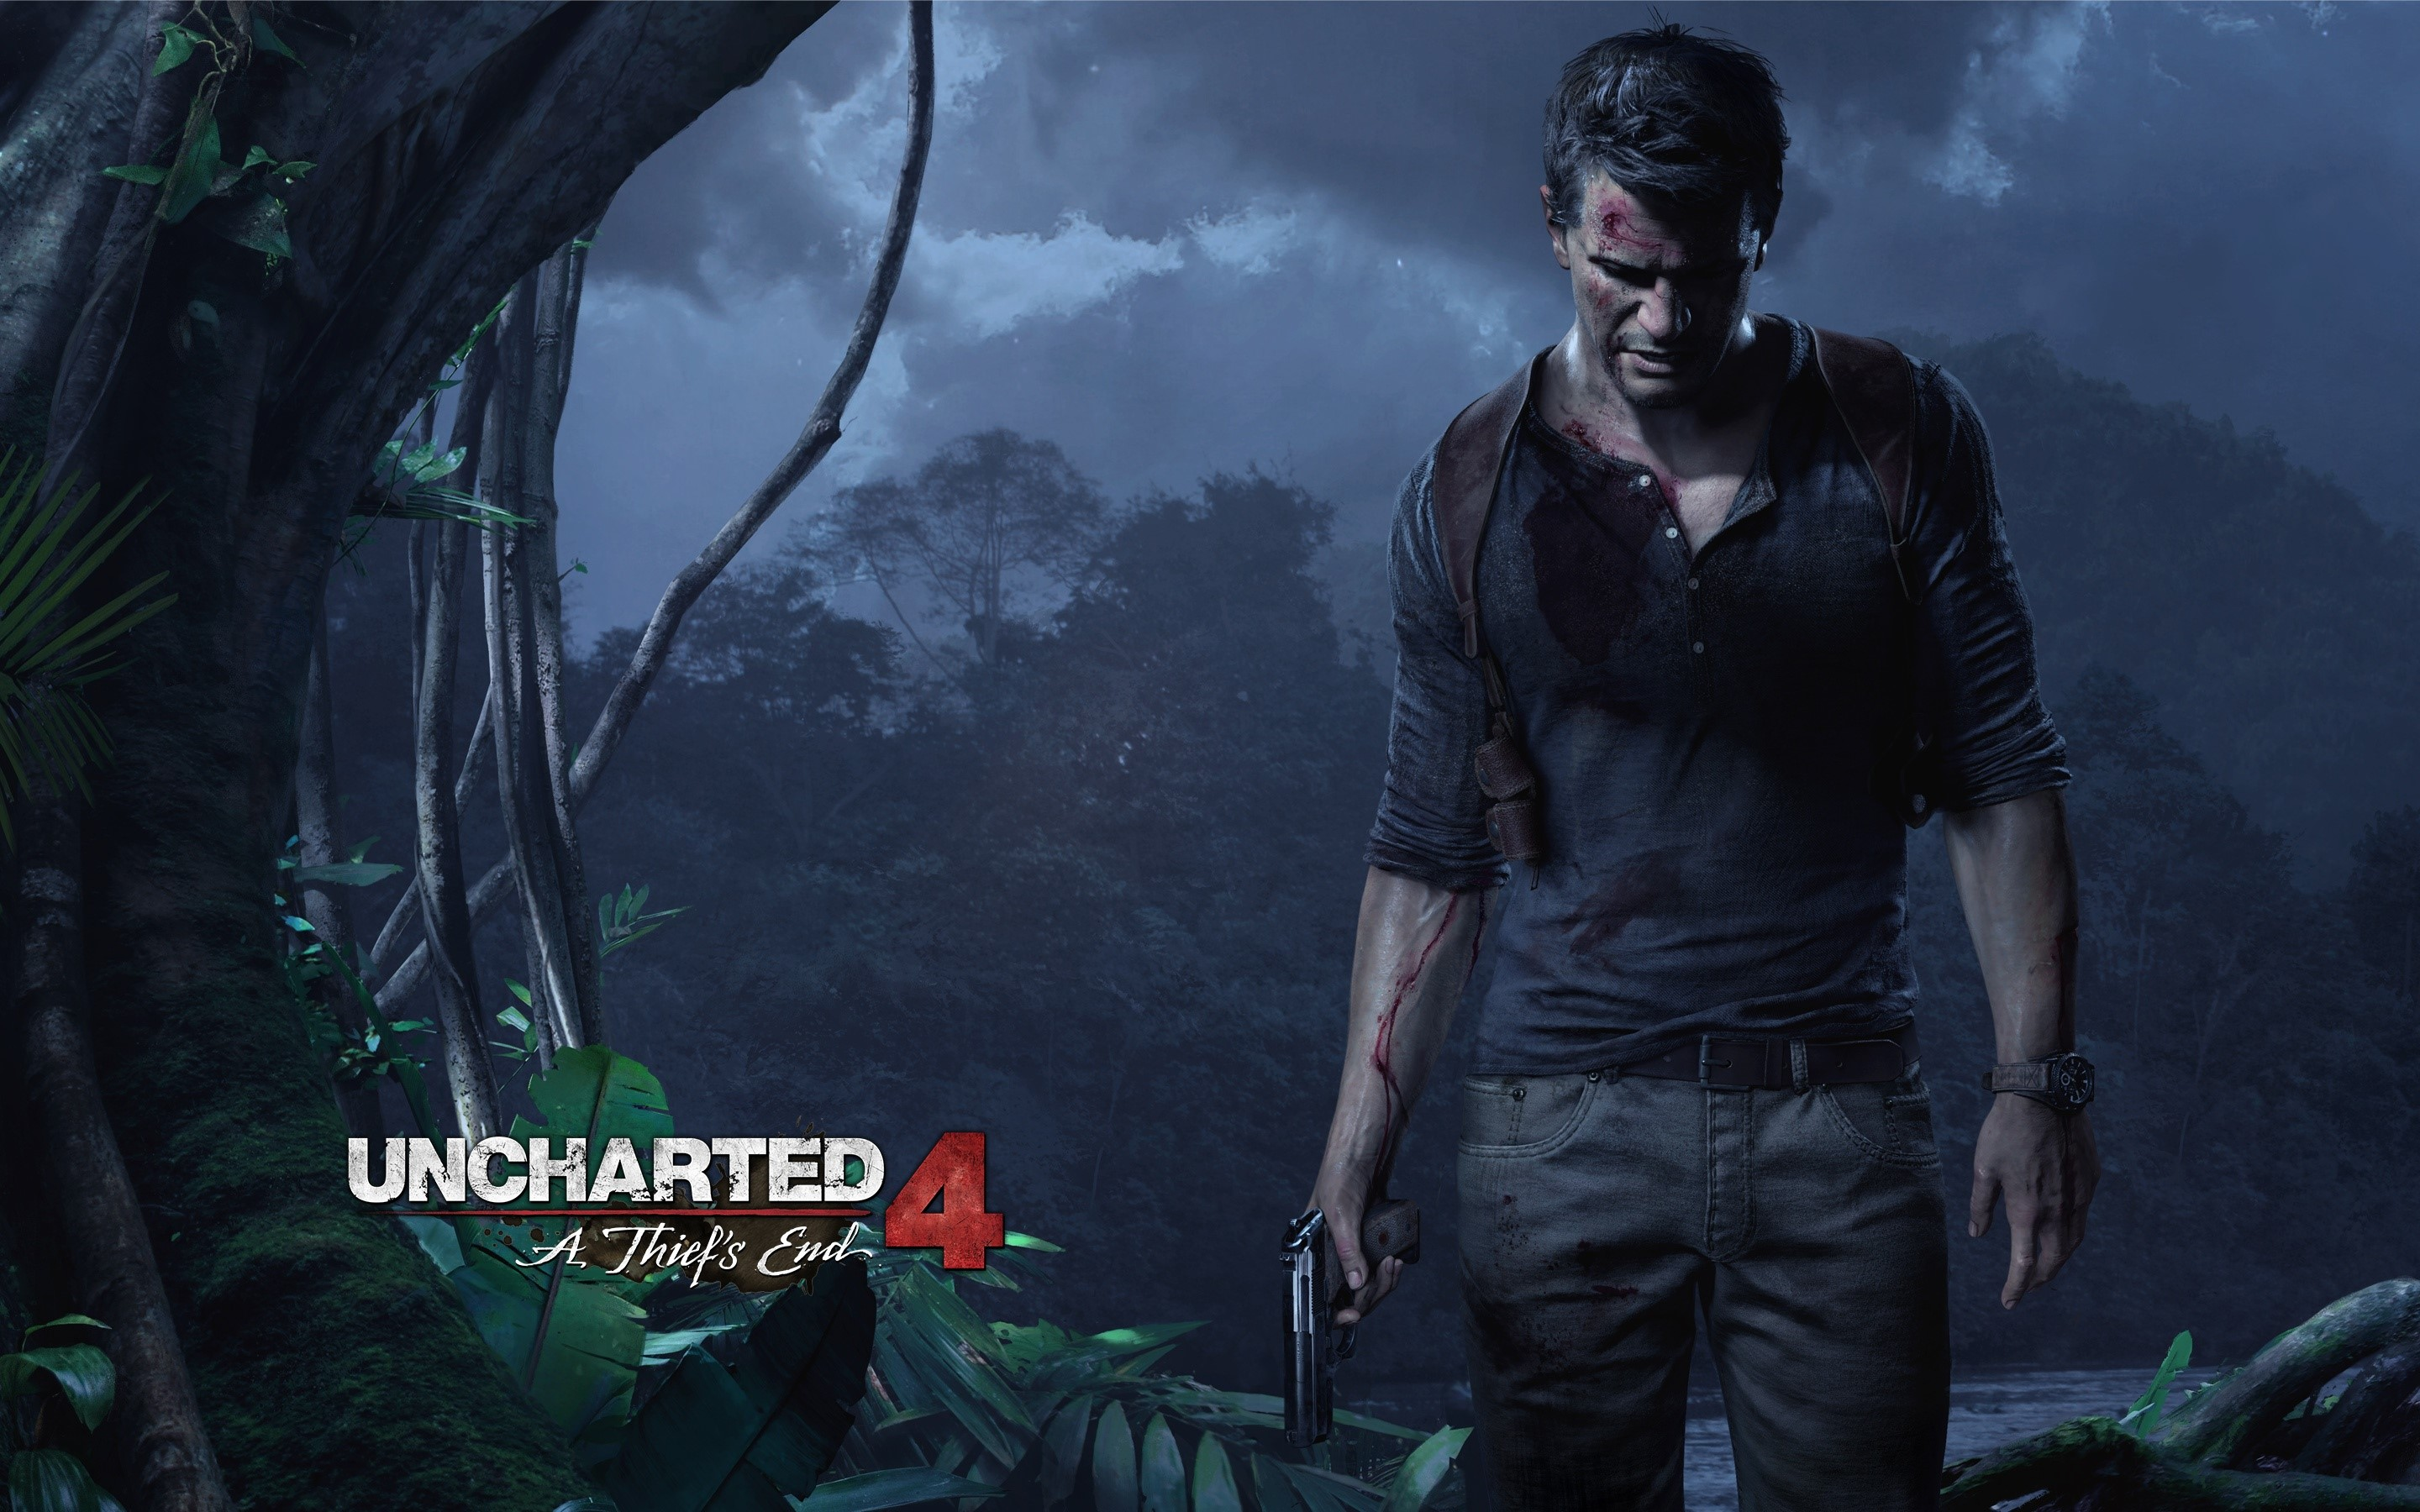 Wallpaper Uncharted game 4: The end of a thief